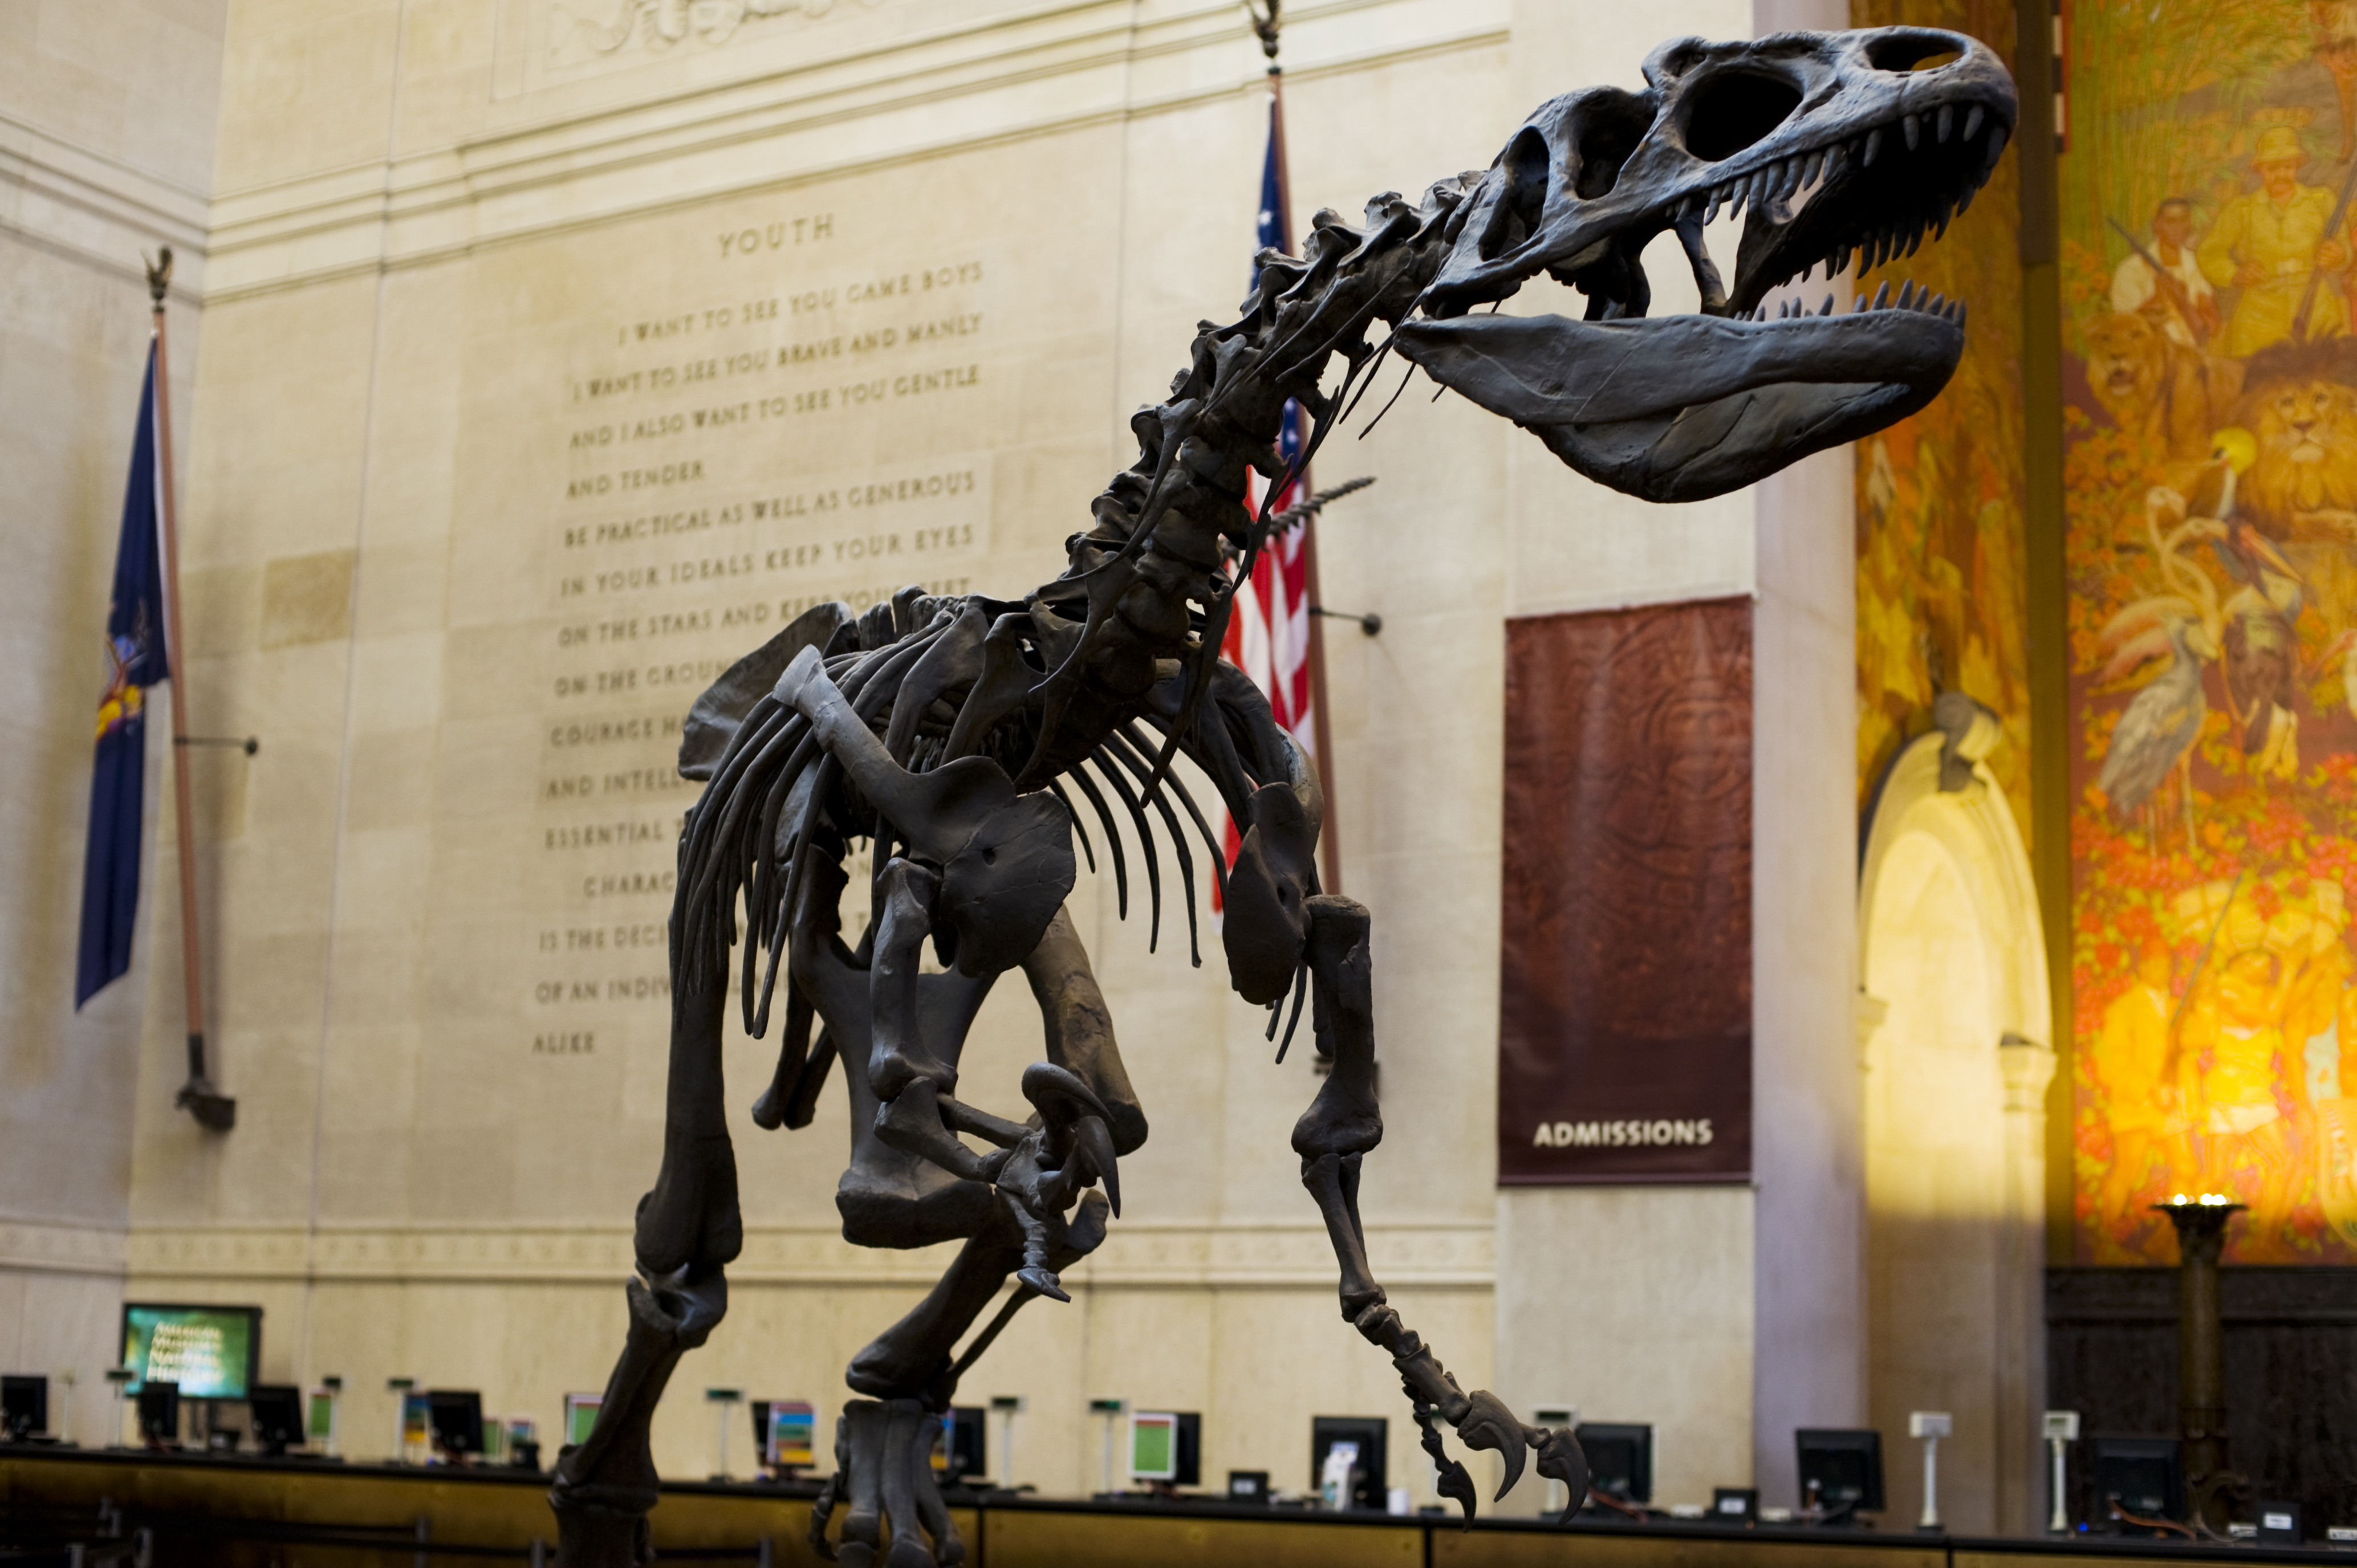 American Museum Of Natural History New York City Usa